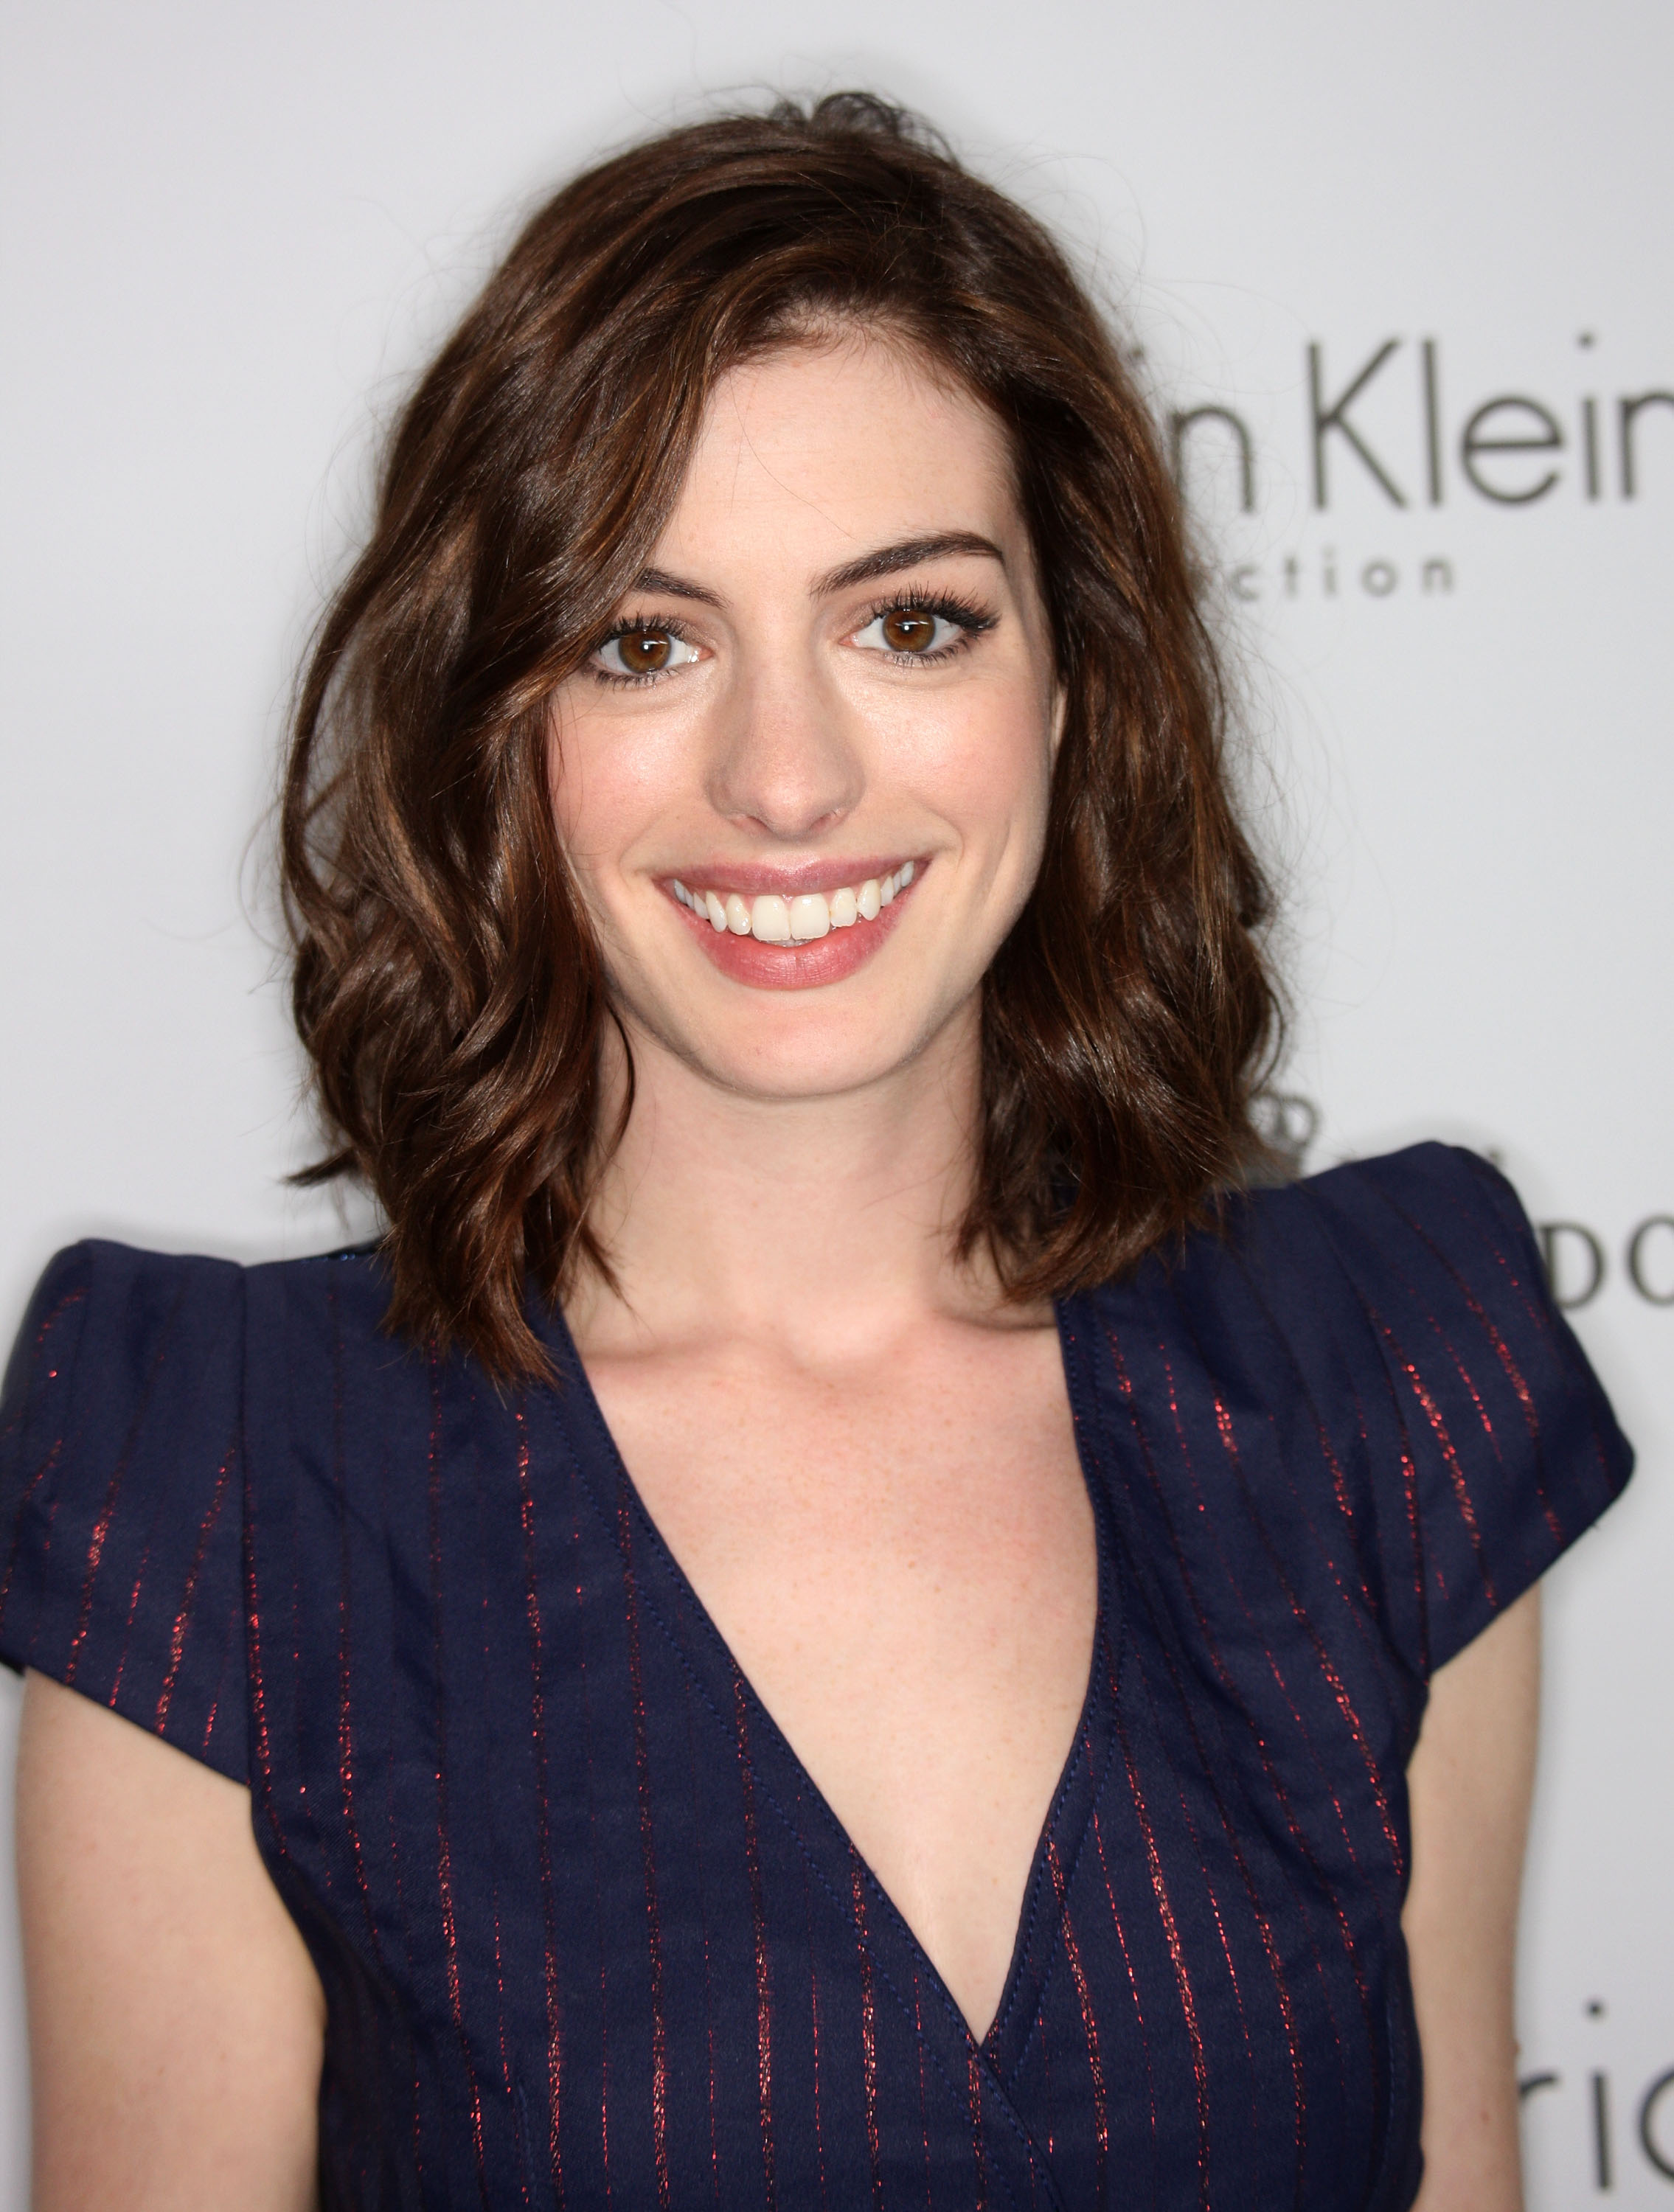 67620_Anne_Hathaway_2008-10-06_-_15th_annual_Women_In_Hollywood_Tribute_122_349lo.jpg